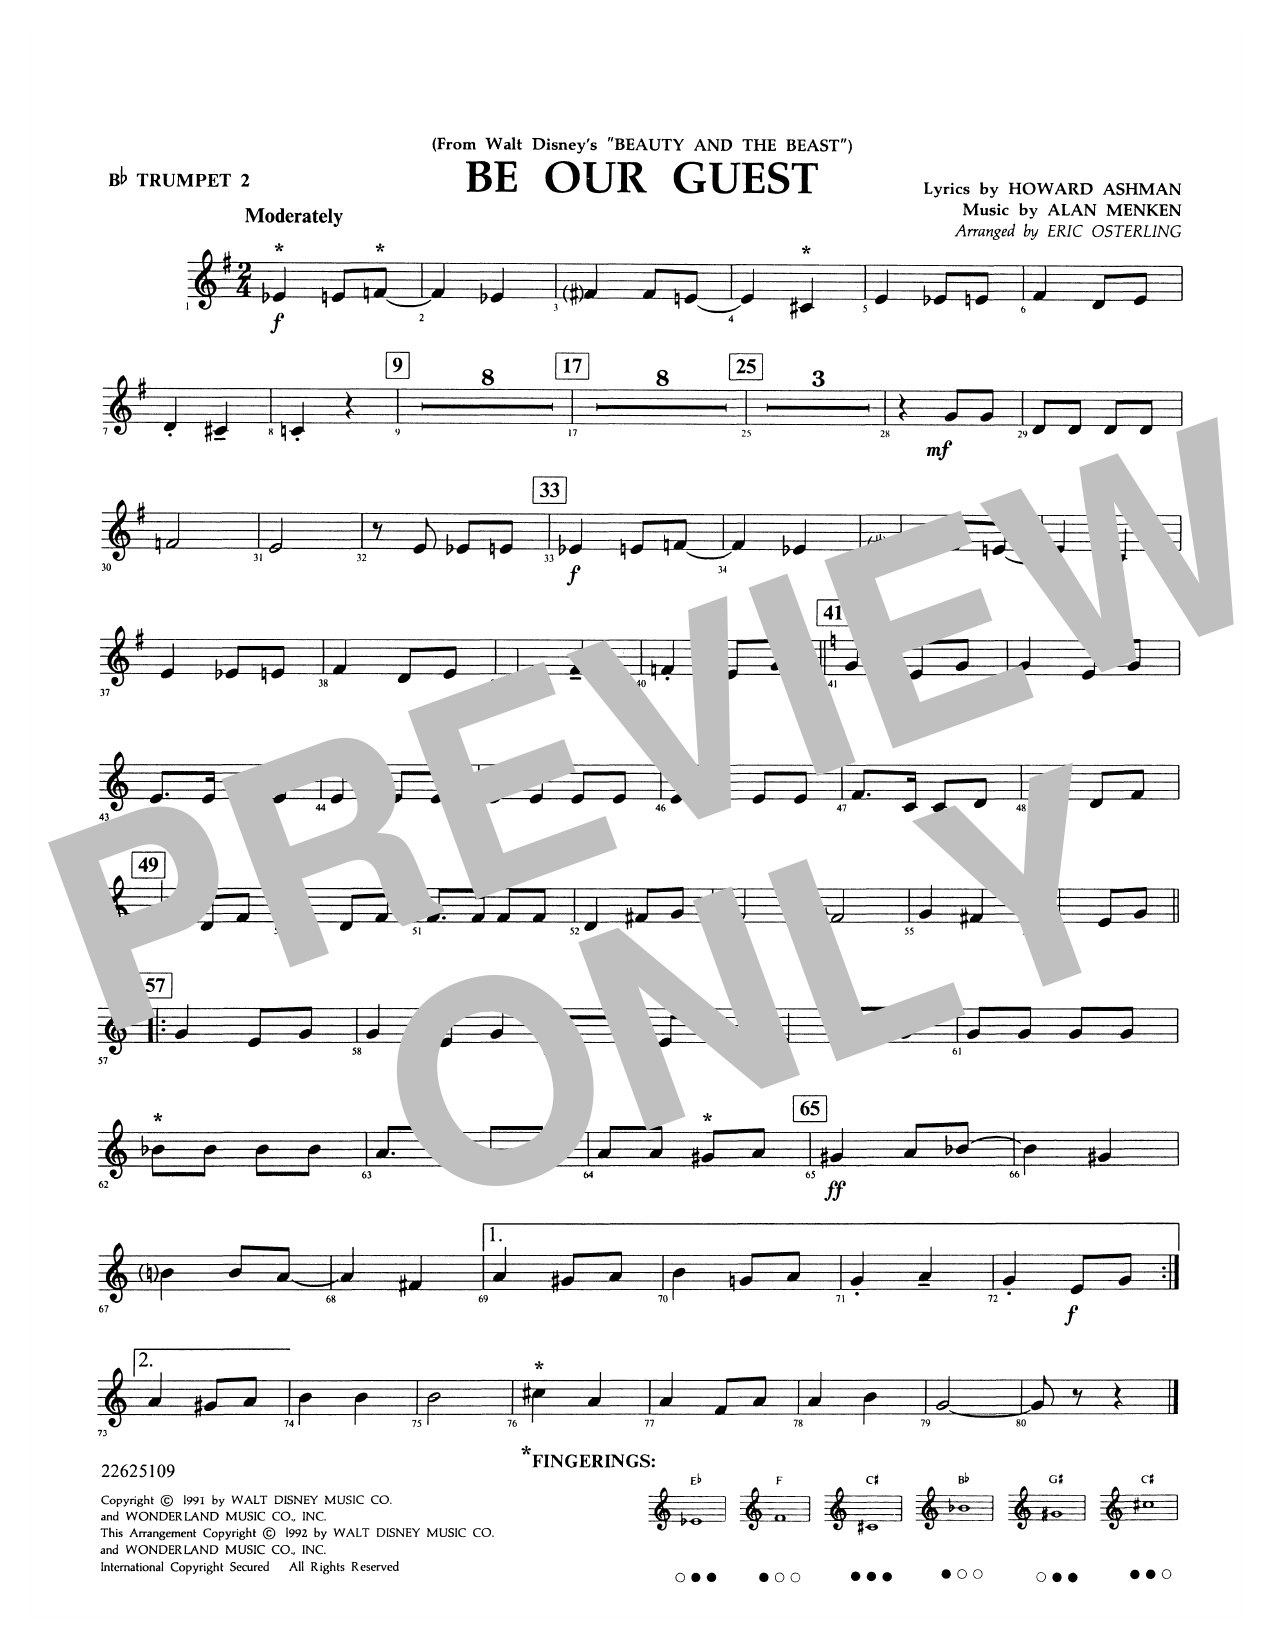 Be Our Guest (from Beauty And The Beast) (arr. Eric Osterling) - Bb Trumpet 2 Sheet Music